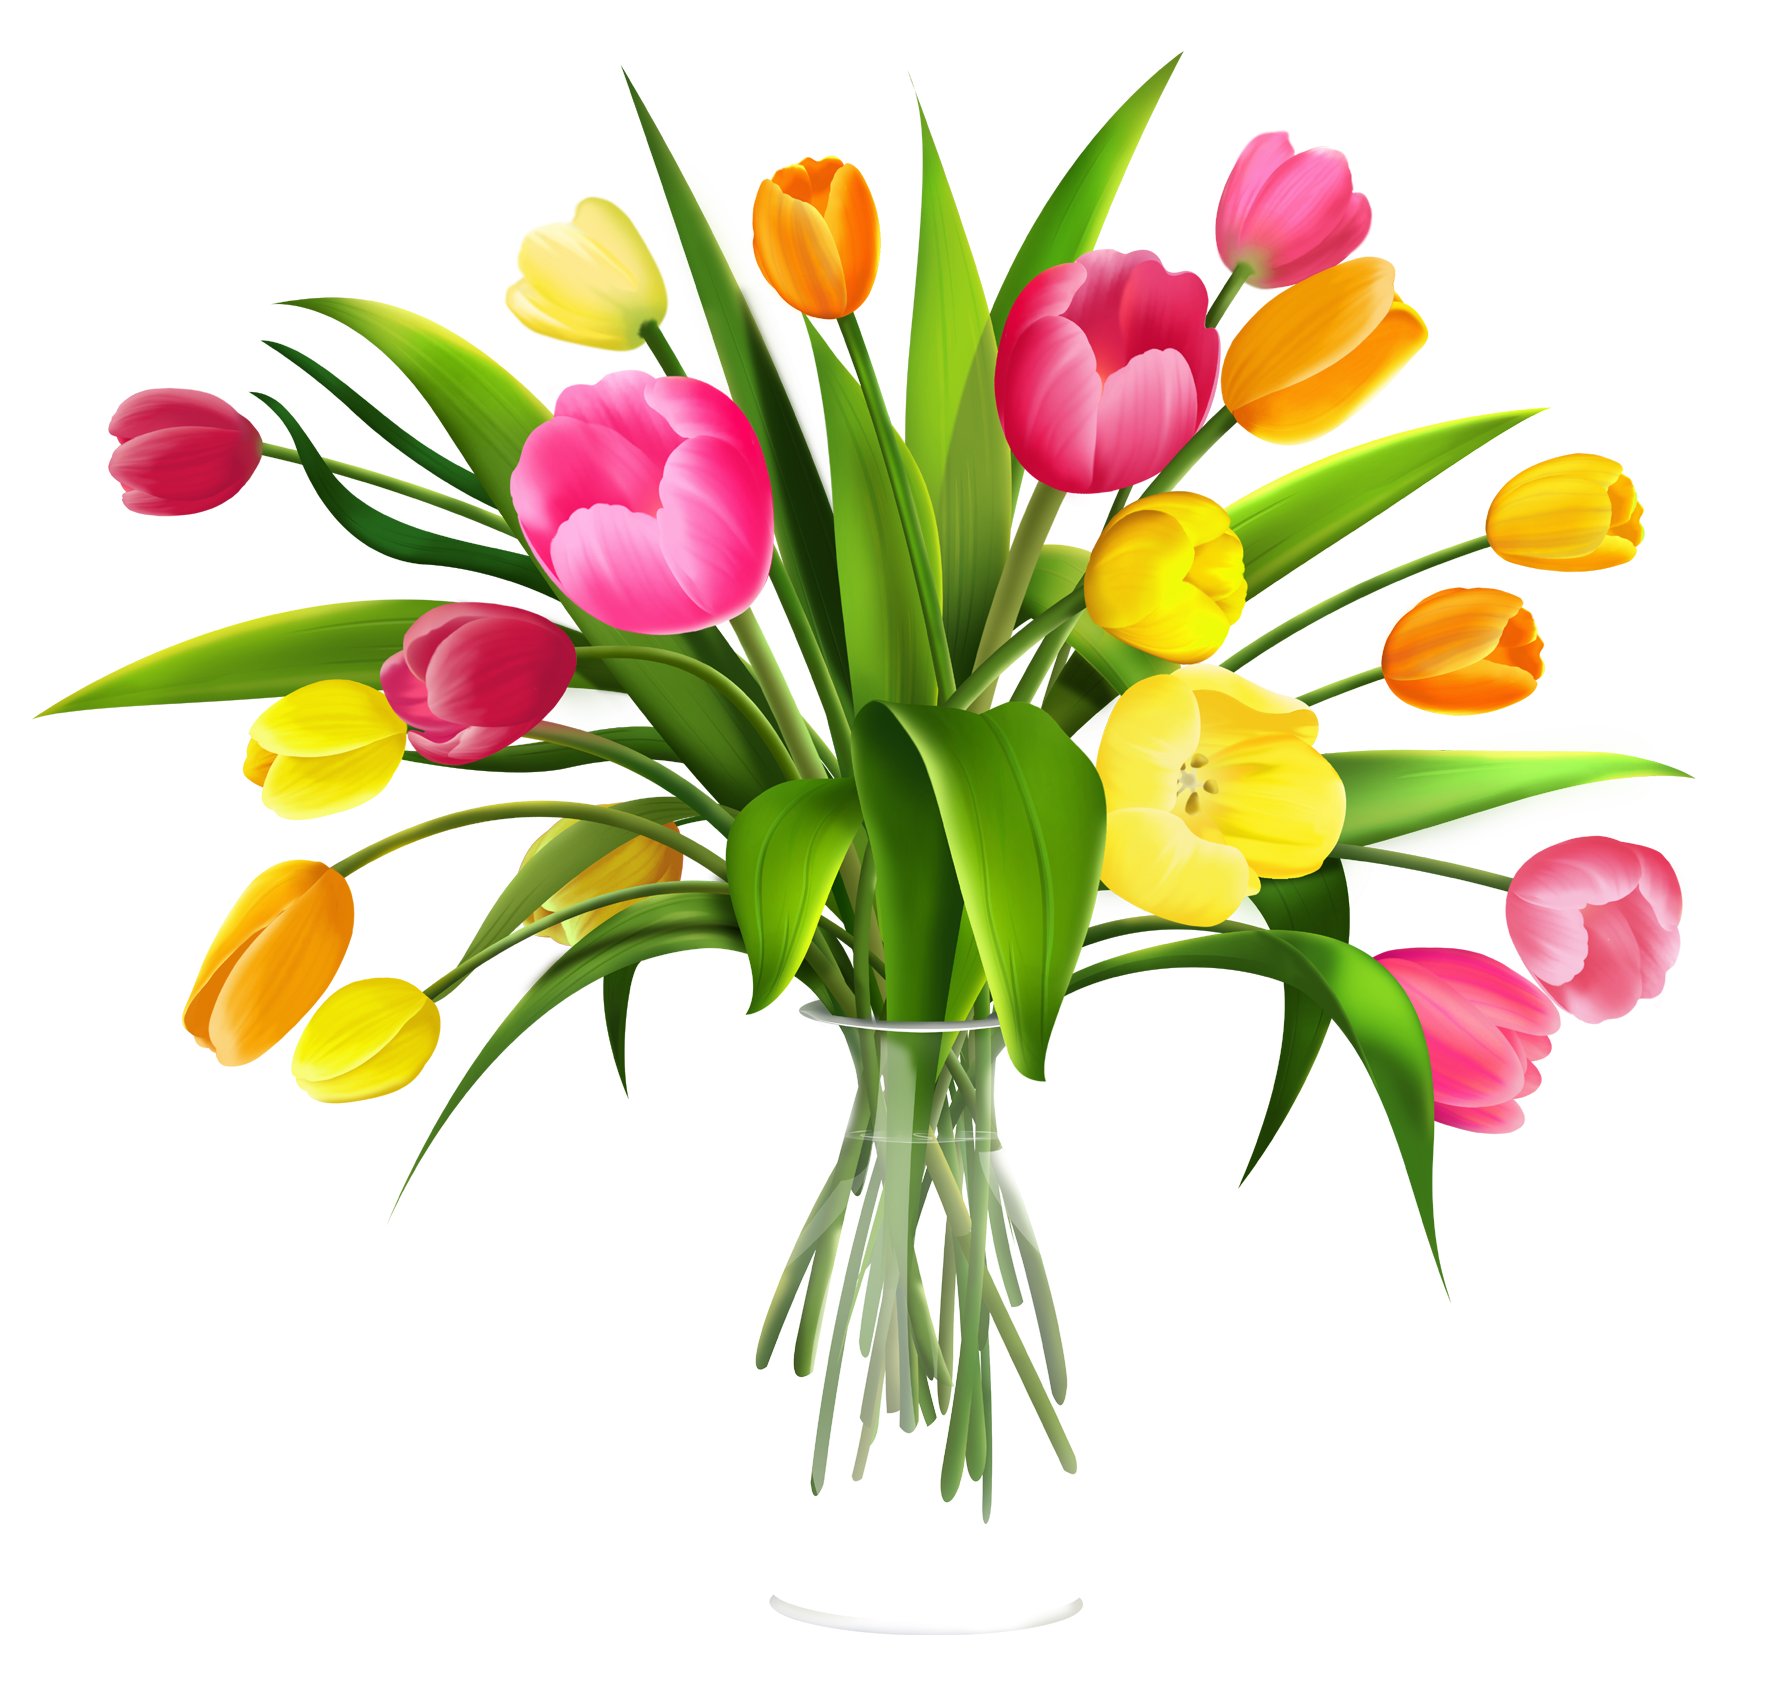 free clip art flowers in vase use these free images for your rh pinterest com free clip art of flowers with no background free clip art of flowers and plants